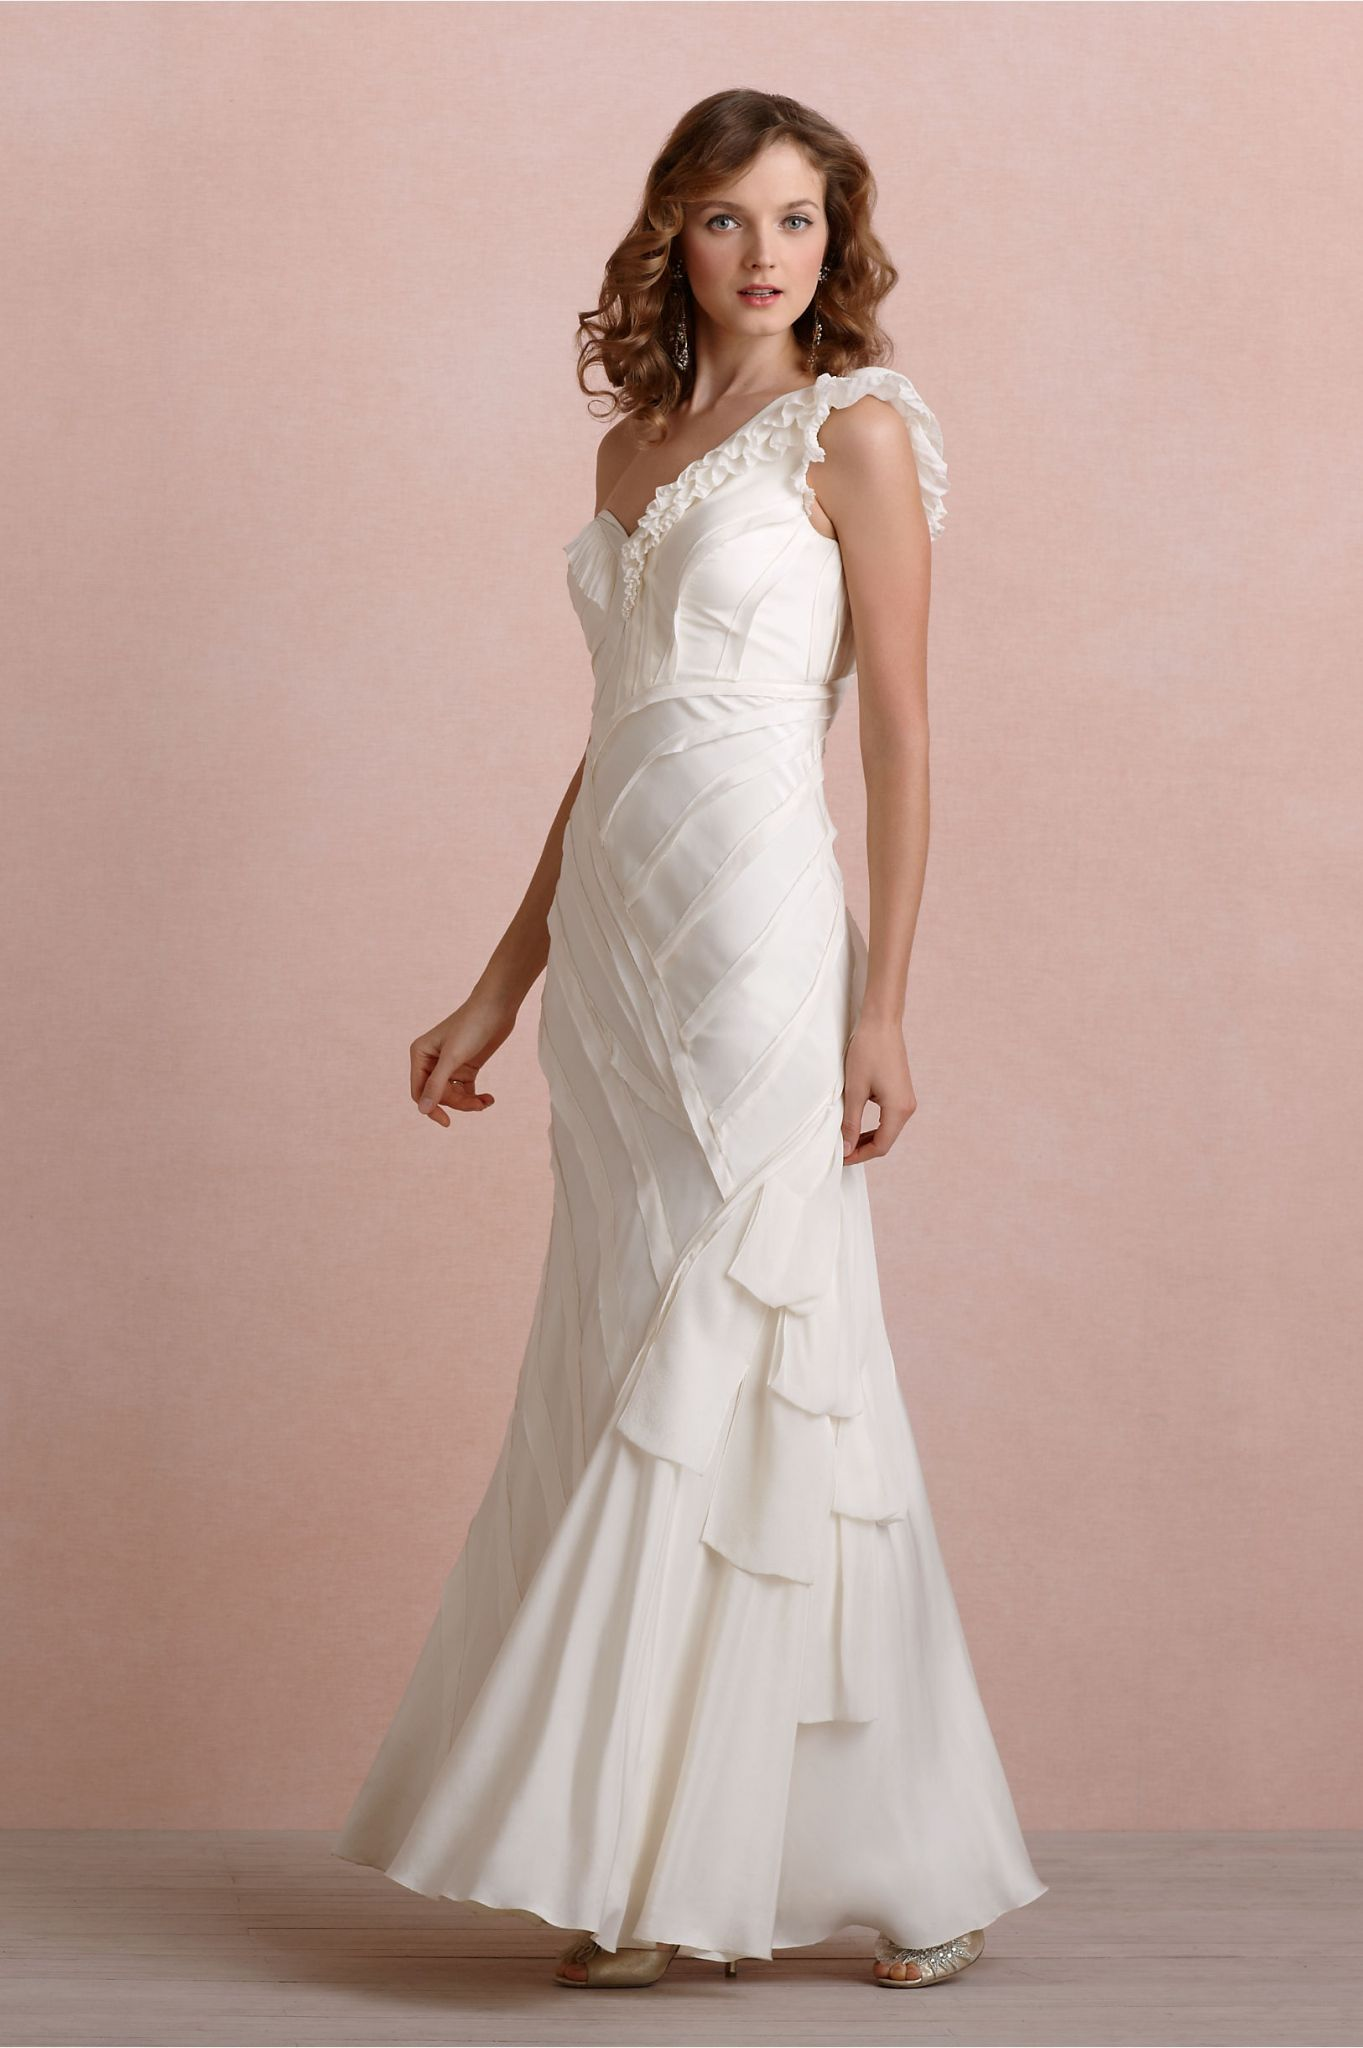 Silk Wedding Dresses for Sale - Plus Size Dresses for Wedding Guests ...